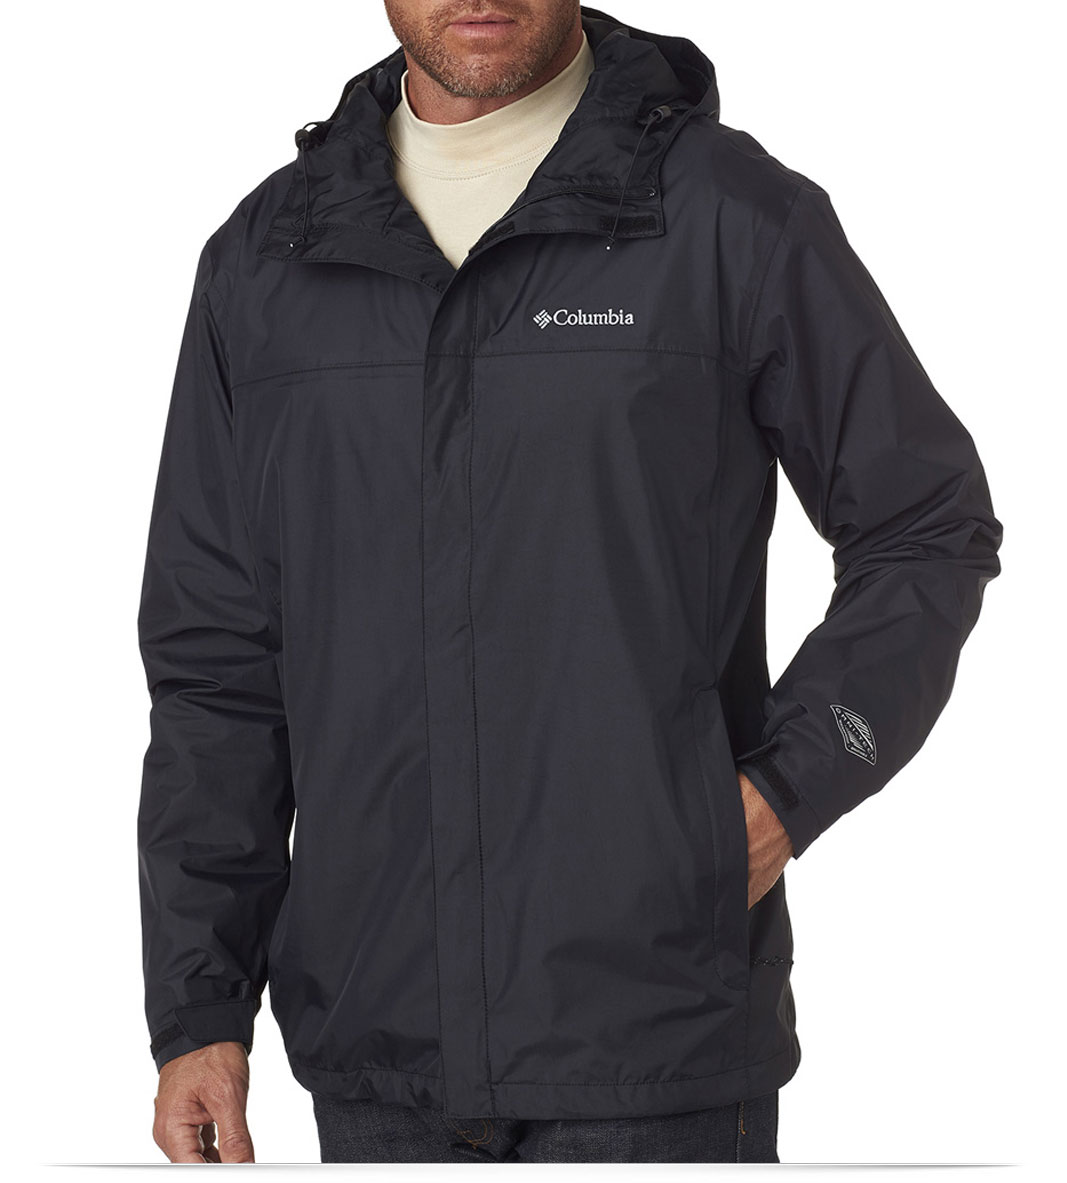 Design Columbia Men's Watertight II Jacket